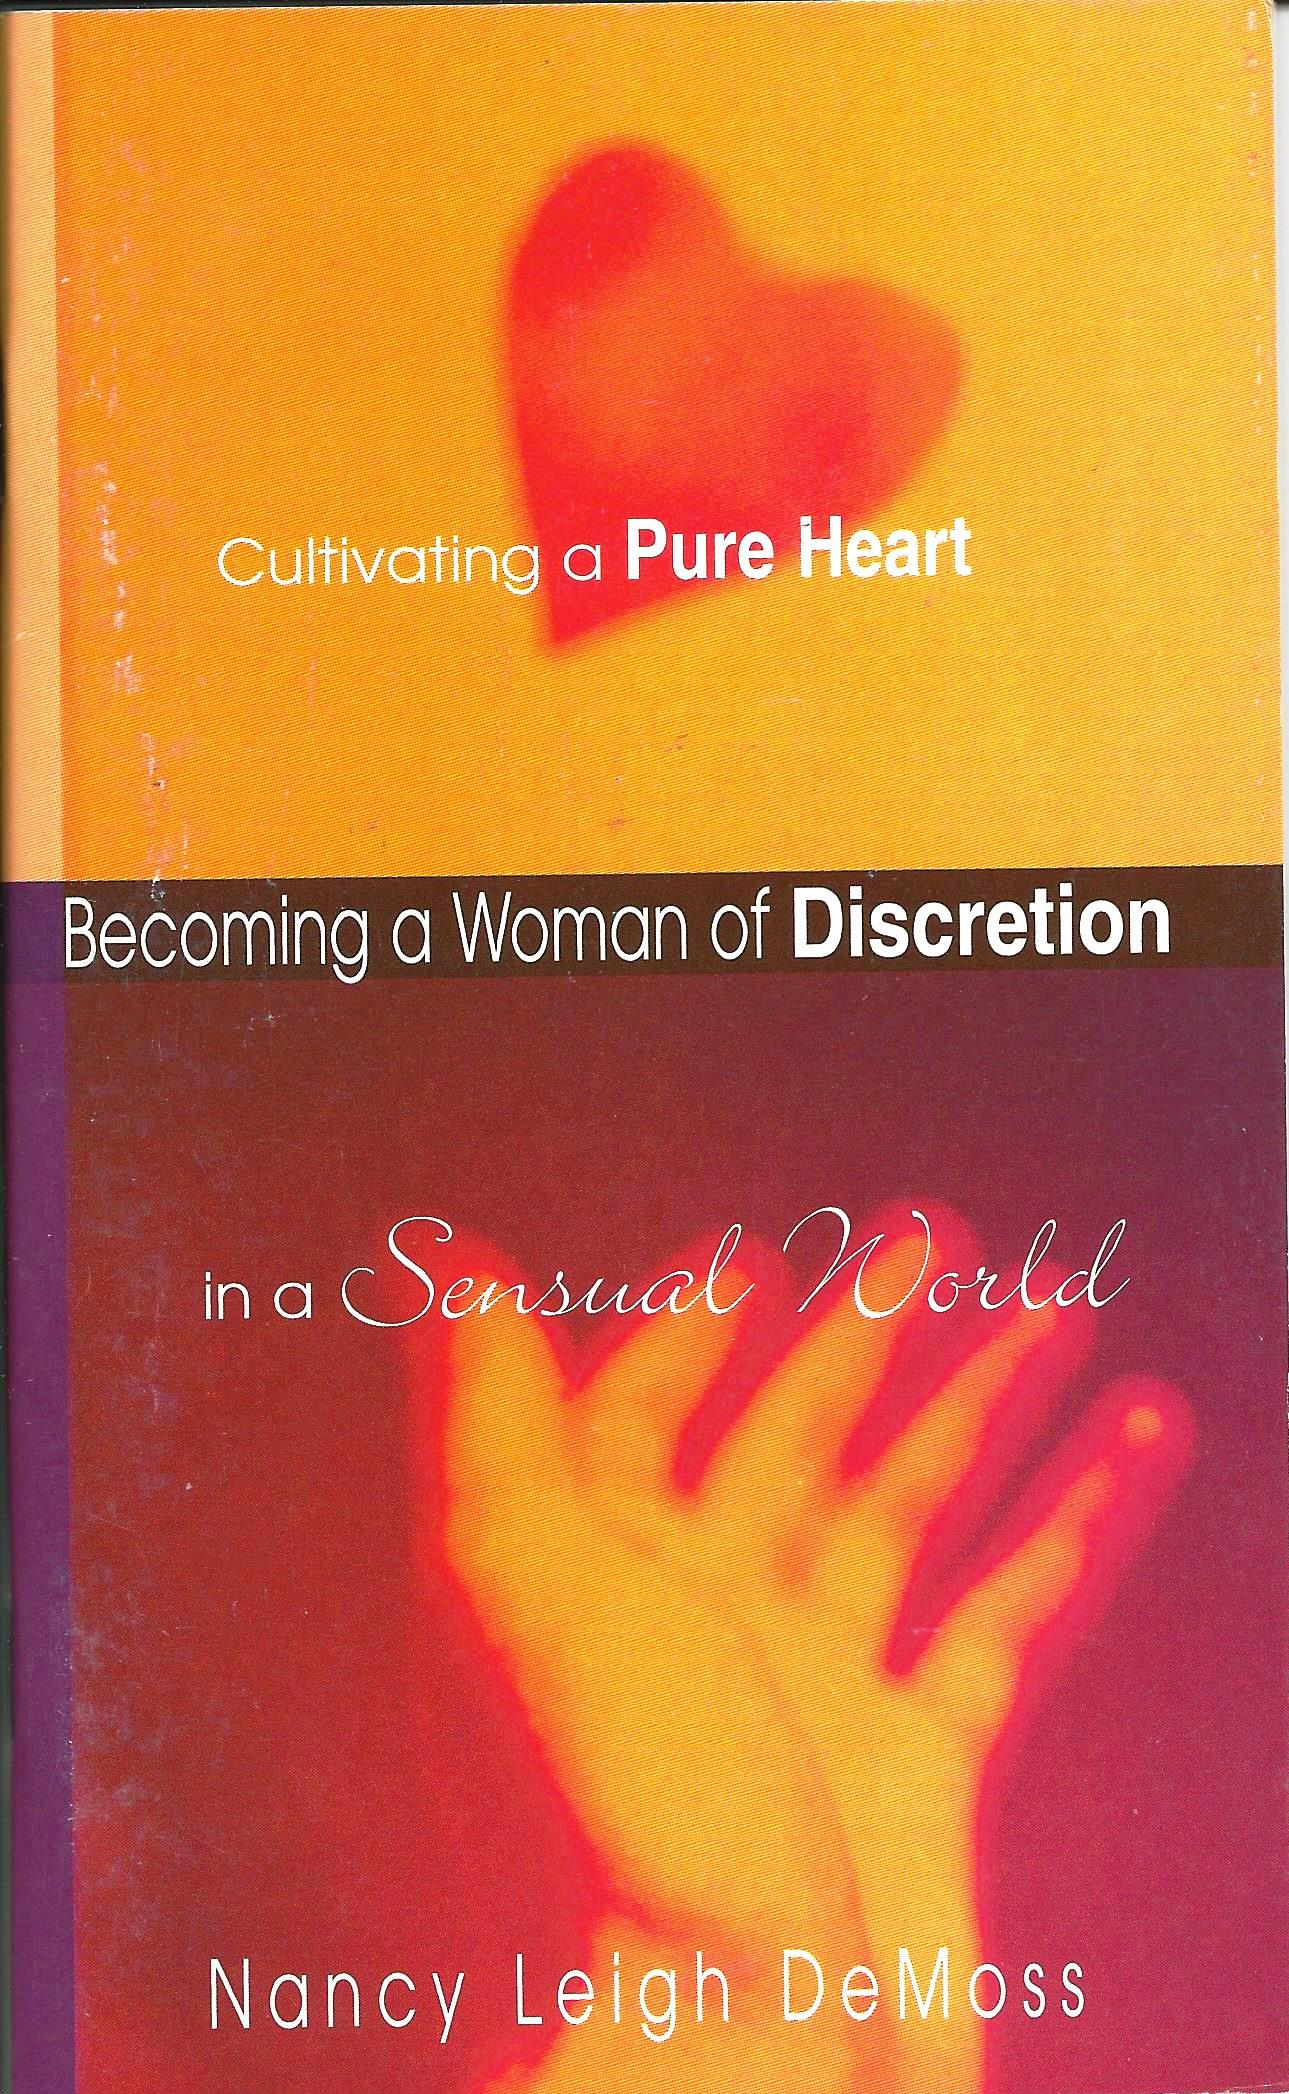 BECOMING A WOMAN OF DISCRETION Nancy Leigh DeMoss